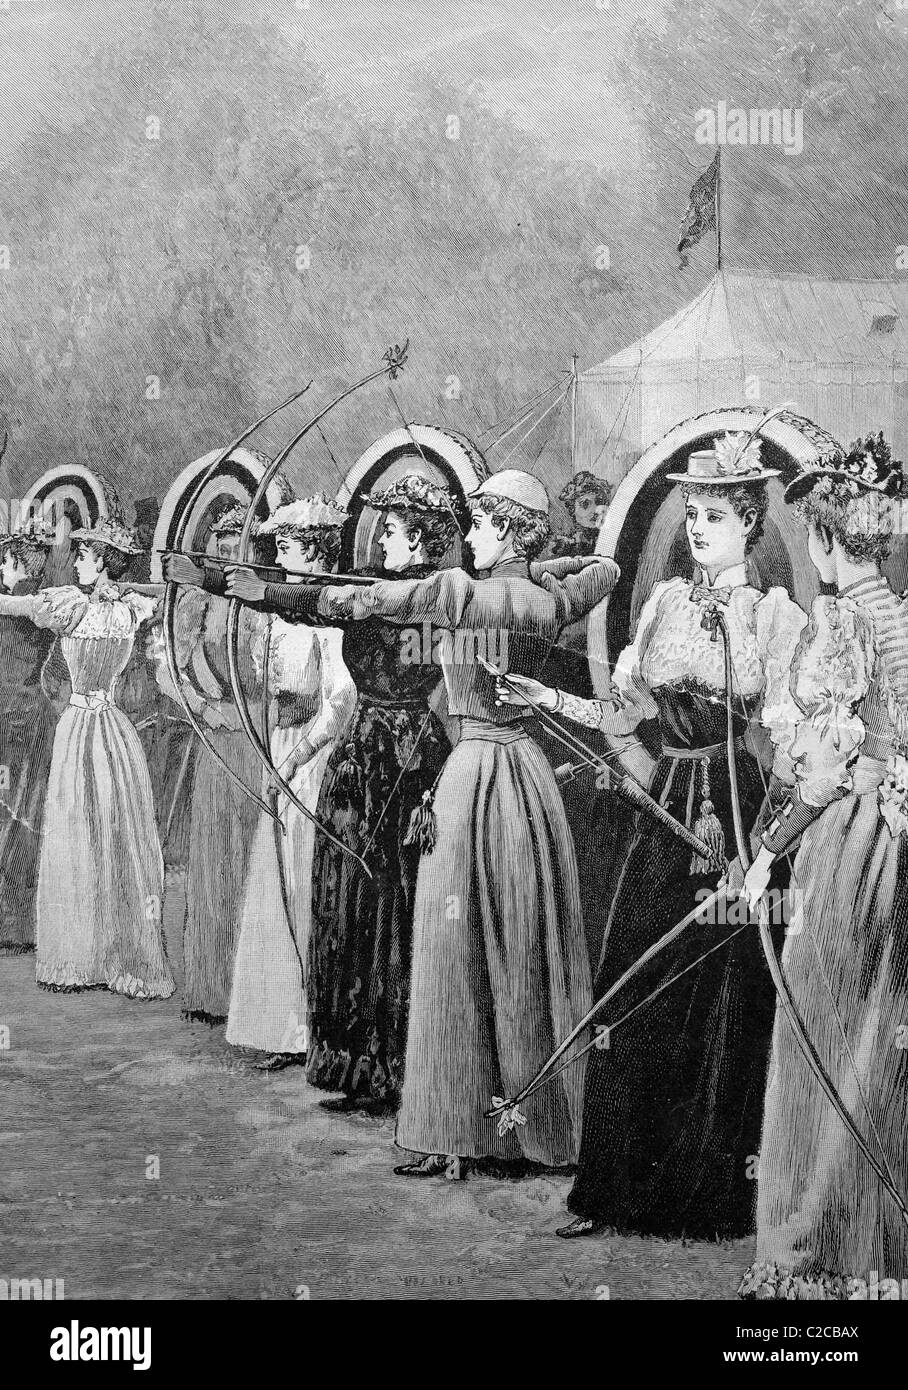 Women's competition in archery in Regent Park in London, England, historical illustration, ca. 1893 Stock Photo